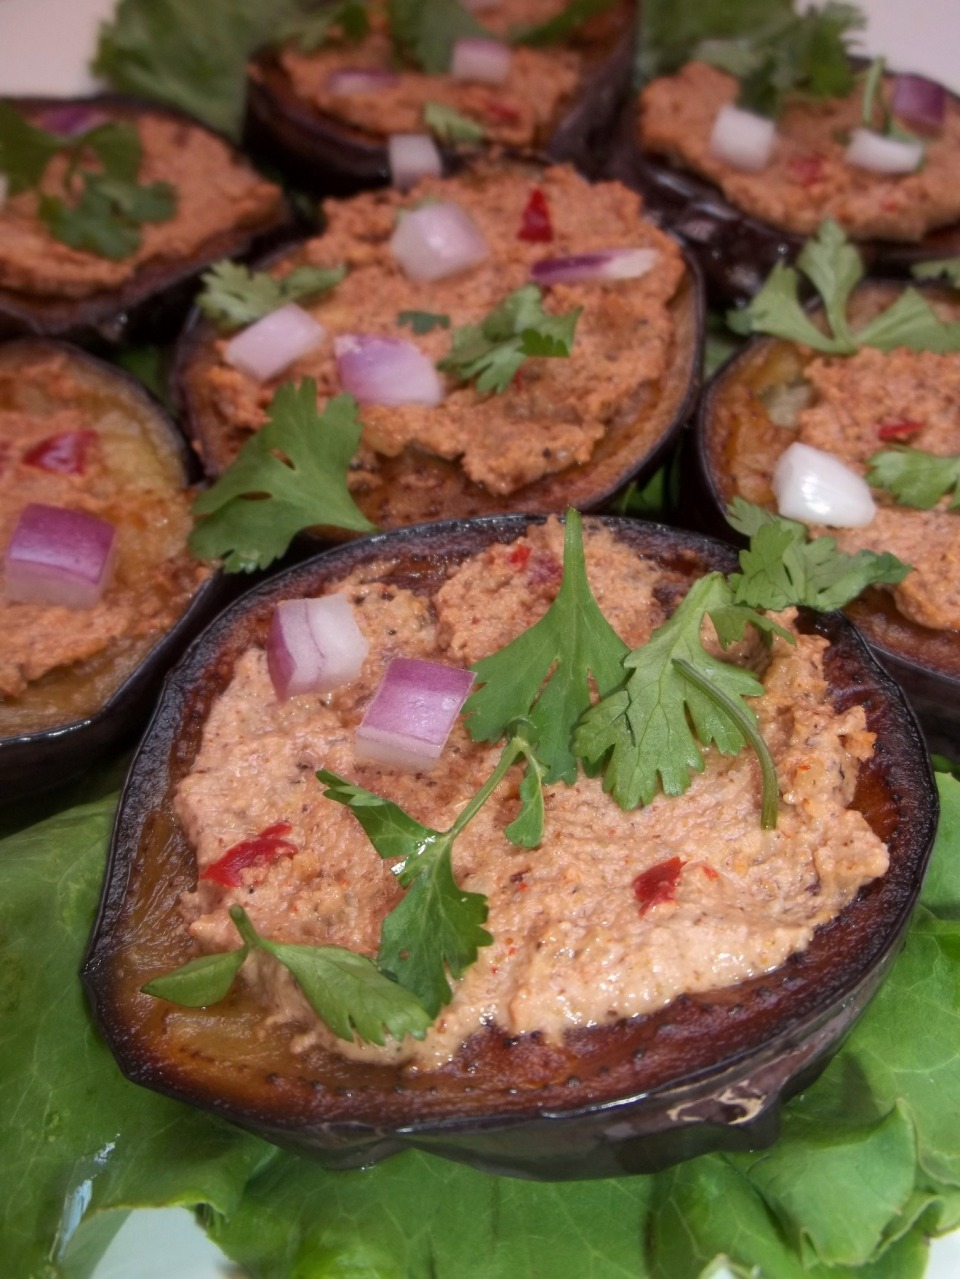 Eggplant with Walnuts and Red Ajika ready for serving